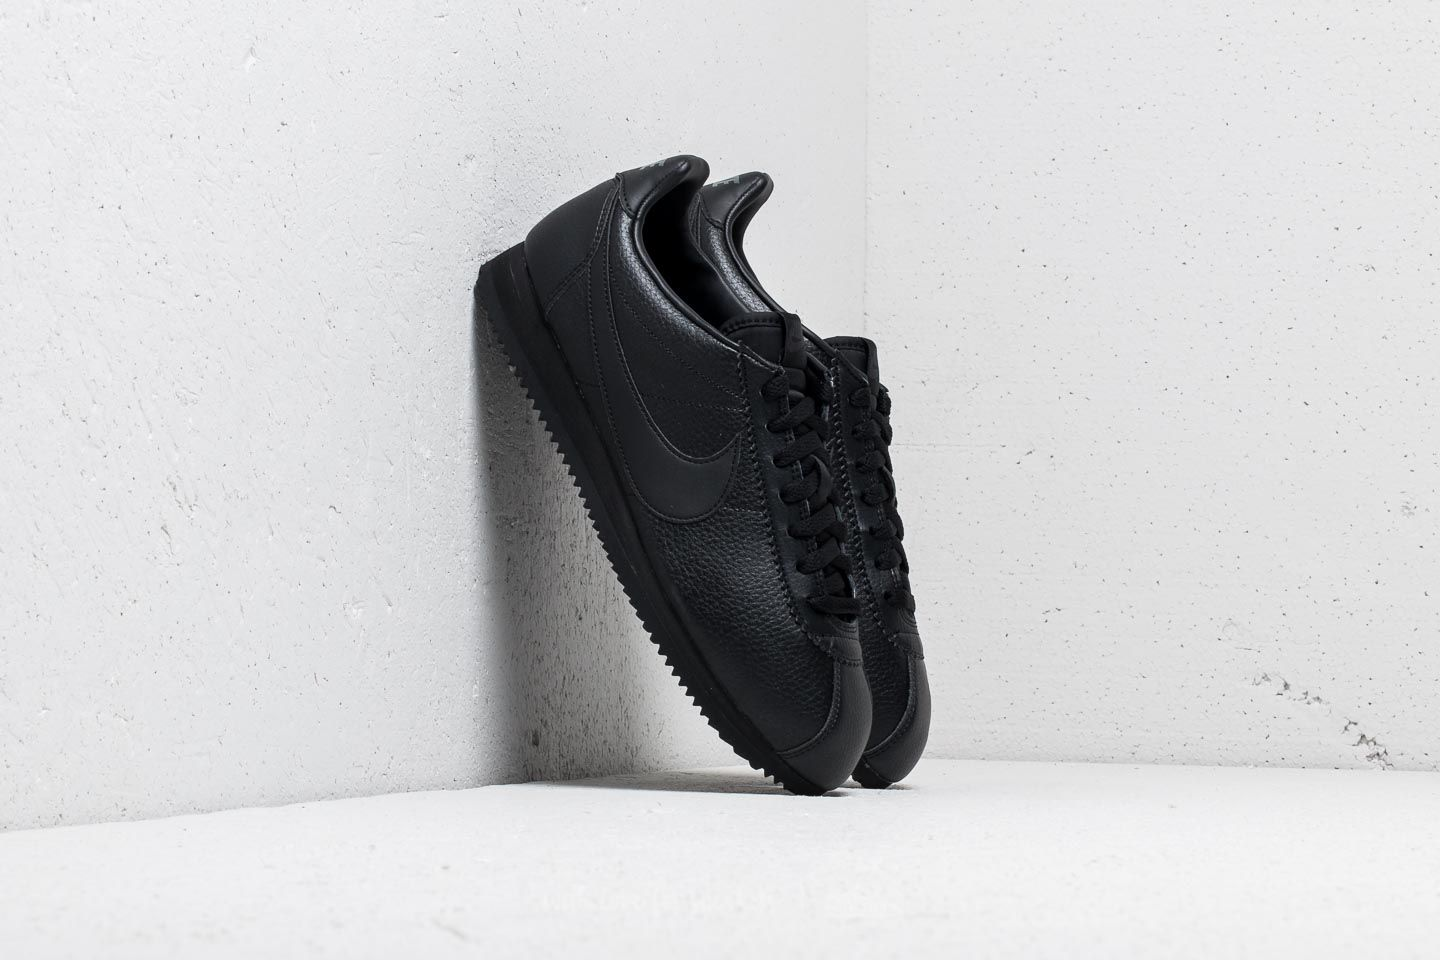 sneakers for cheap eb316 2f2cb Nike Classic Cortez Leather Black  Black-Anthracite at a great price 59 €  buy